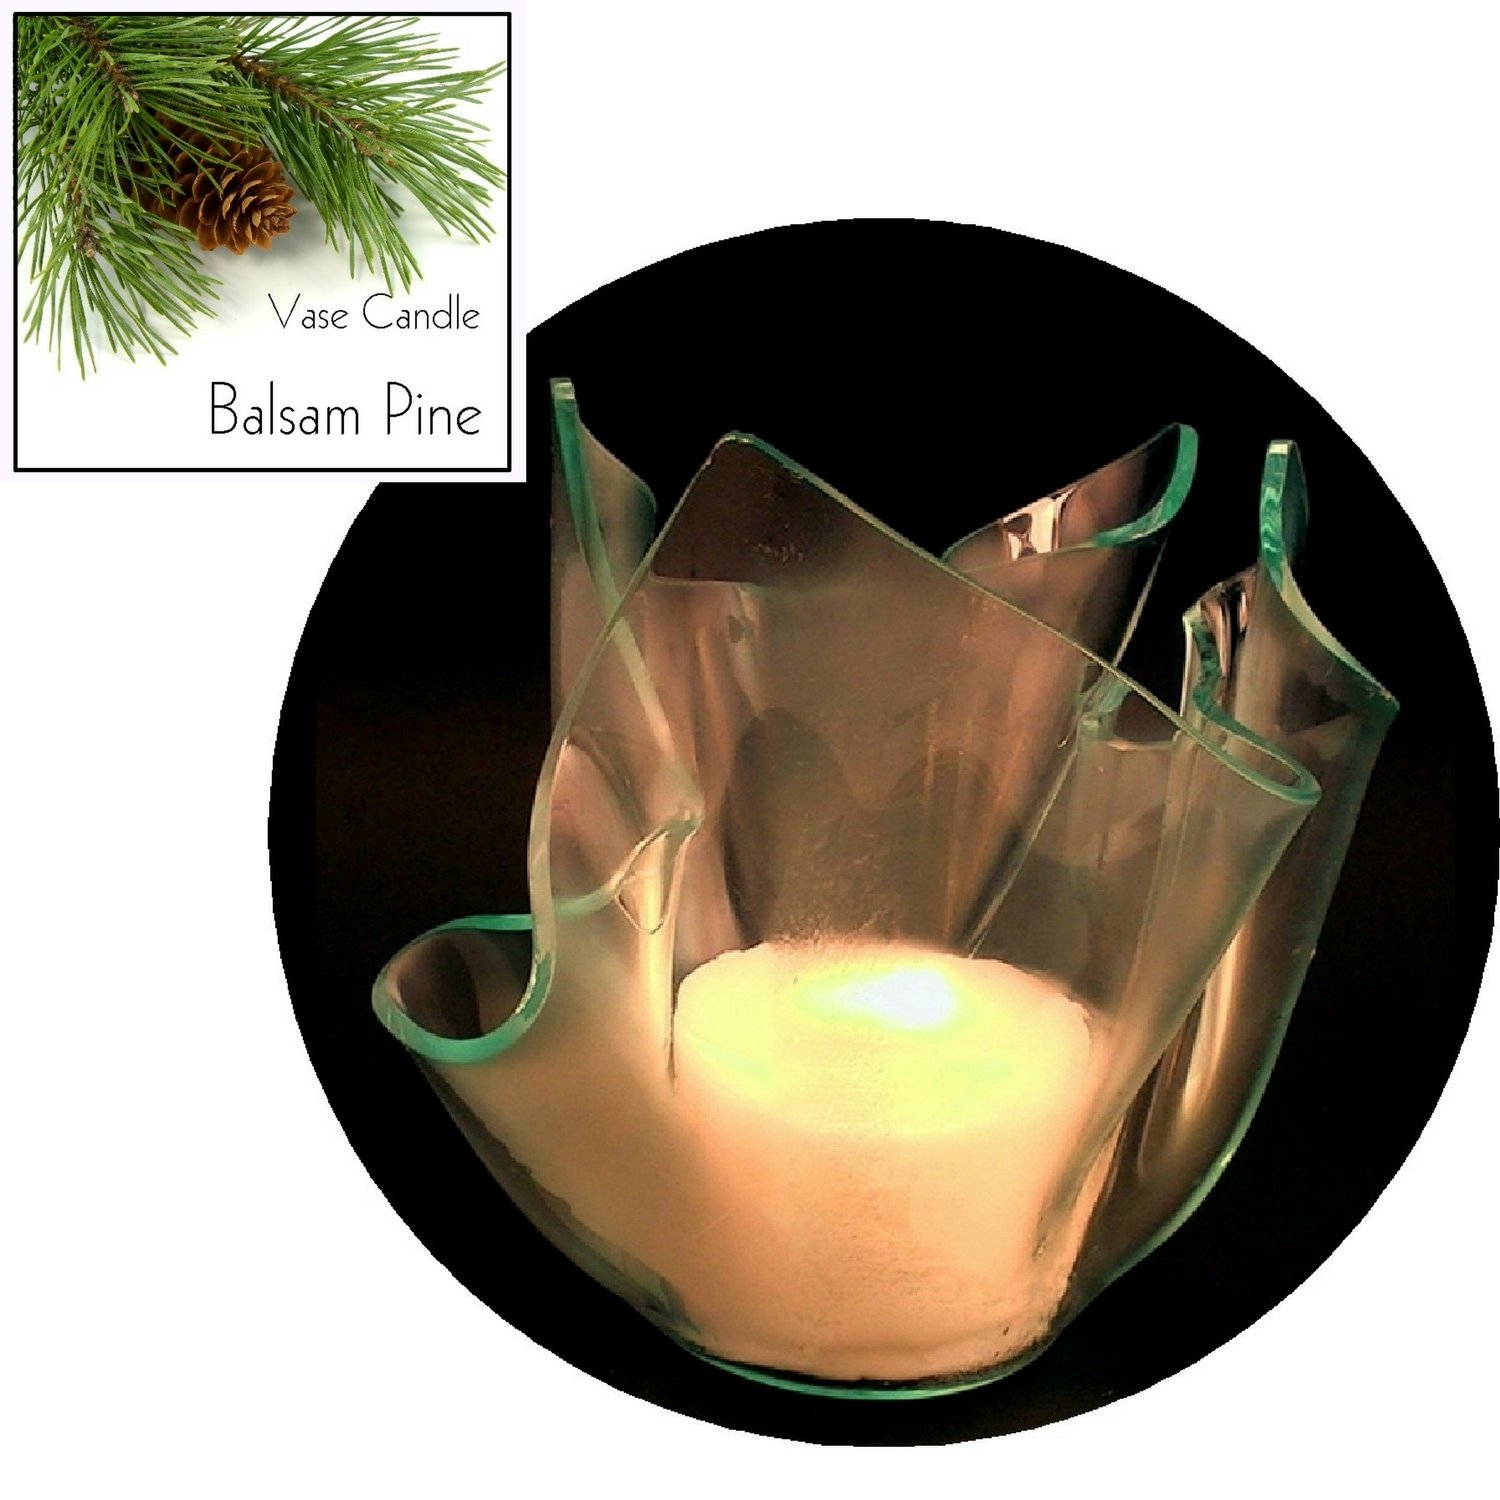 3 Balsam Pine Candle Refills   Clear Satin Vase